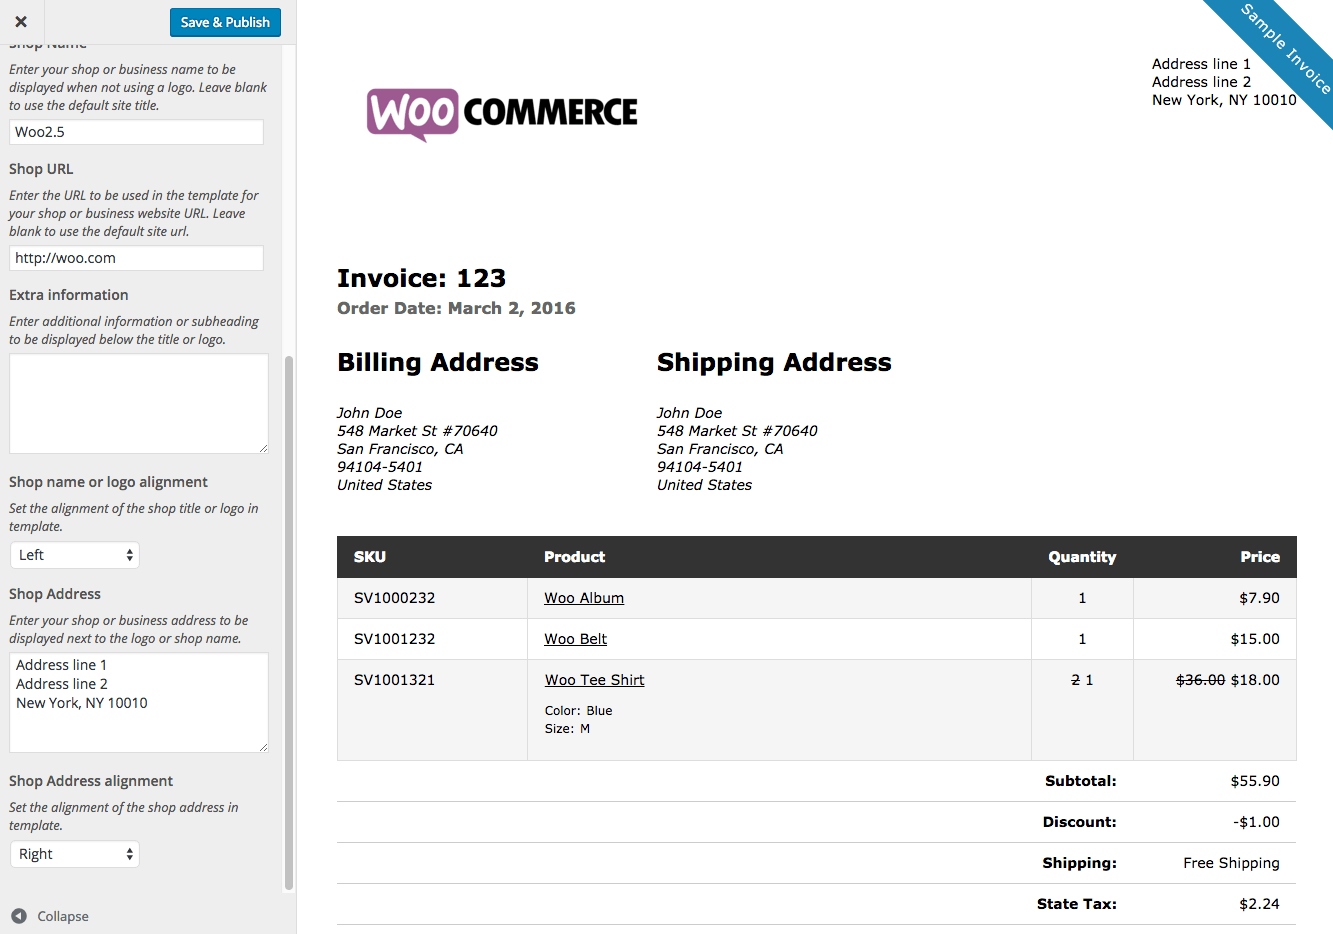 Maidofhonortoastus  Pretty Woocommerce Print Invoices Amp Packing Lists  Woocommerce Docs With Exquisite Woocommerce Print Invoices  Packing Lists Customizer With Comely Non Profit Donation Receipt Form Also Define Cash Receipt In Addition Best Receipt Scanning App And Free Rental Receipt As Well As How Long To Save Receipts Additionally Enterprise Rent A Car Receipts From Docswoocommercecom With Maidofhonortoastus  Exquisite Woocommerce Print Invoices Amp Packing Lists  Woocommerce Docs With Comely Woocommerce Print Invoices  Packing Lists Customizer And Pretty Non Profit Donation Receipt Form Also Define Cash Receipt In Addition Best Receipt Scanning App From Docswoocommercecom